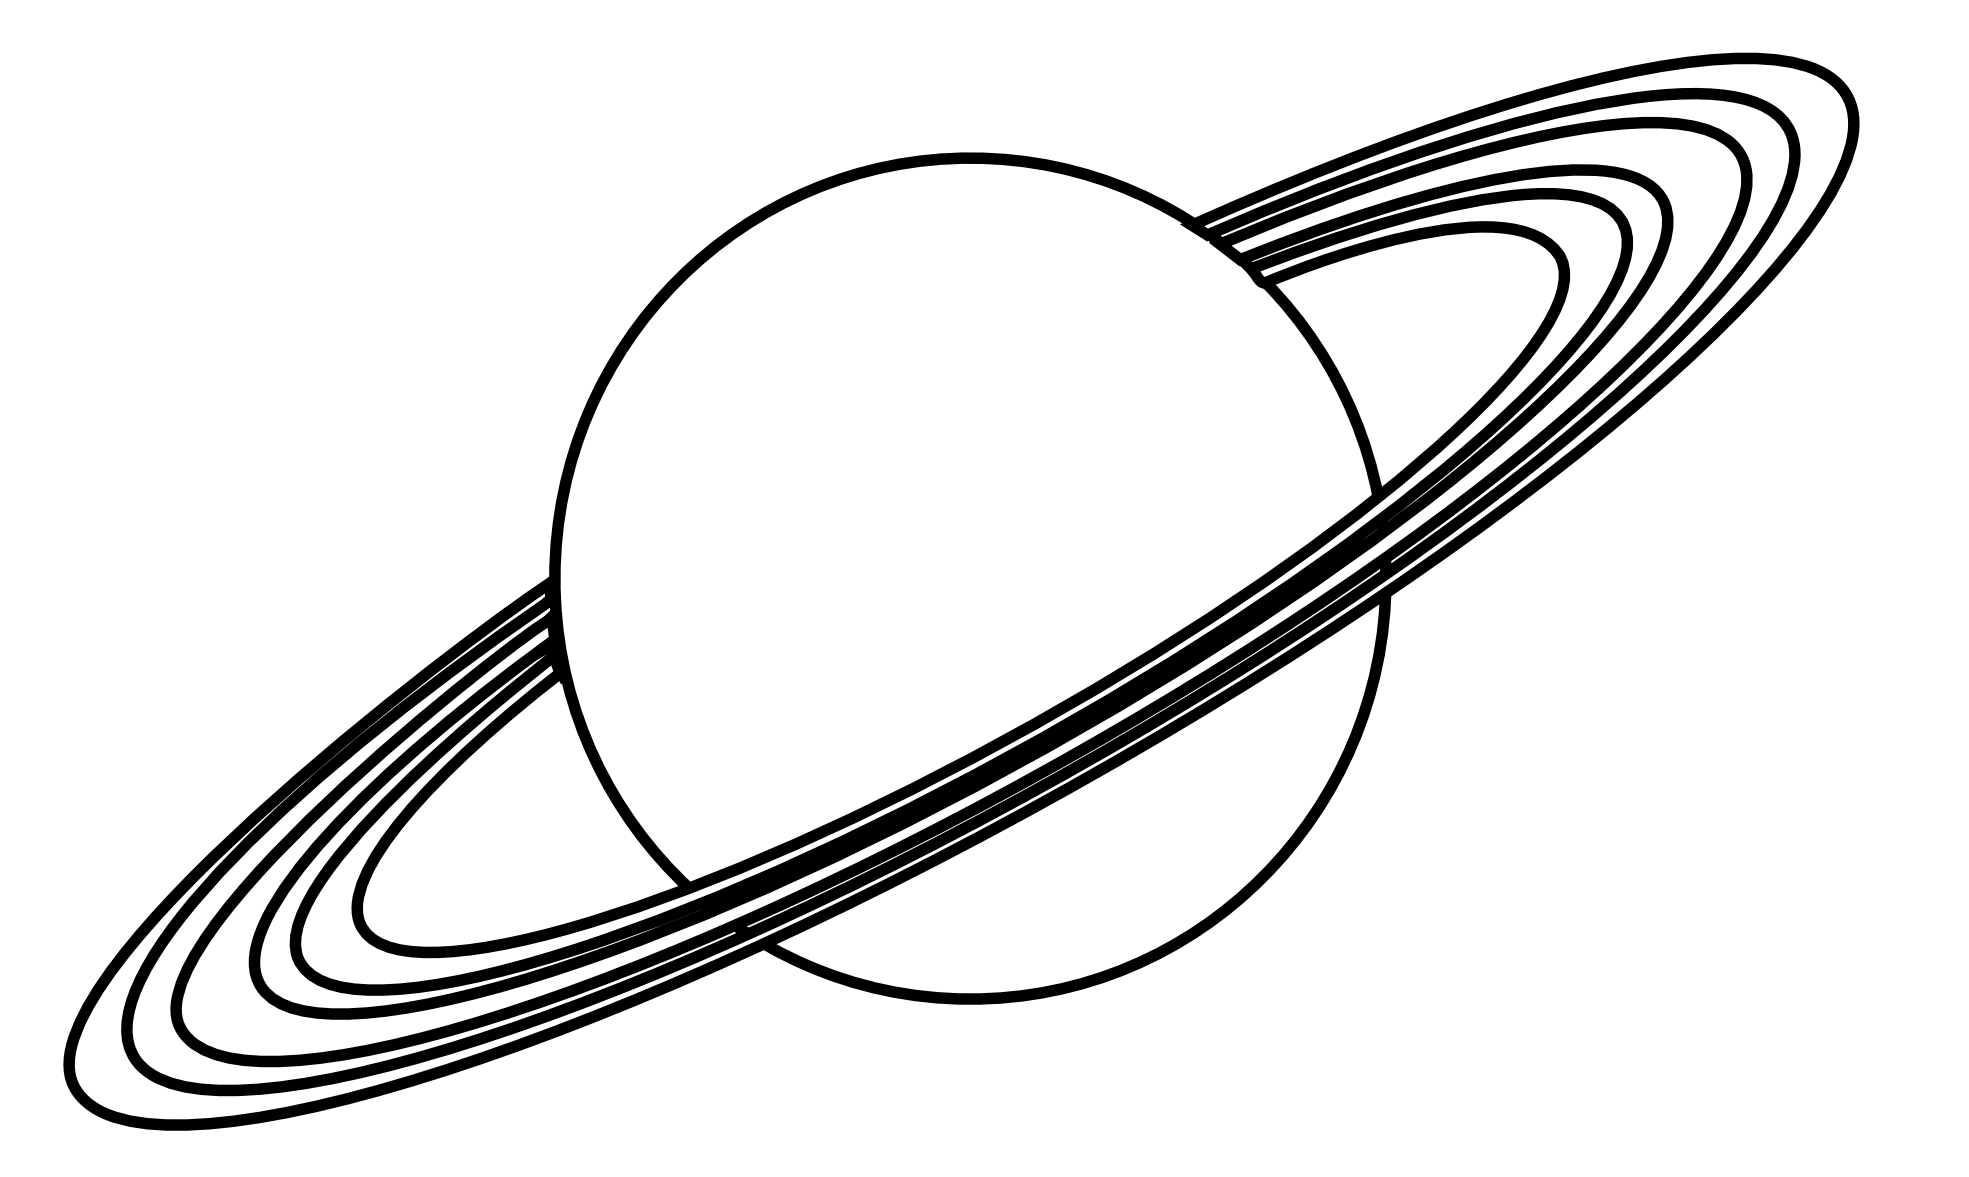 Planet ring logo frames. Galaxy clipart outter